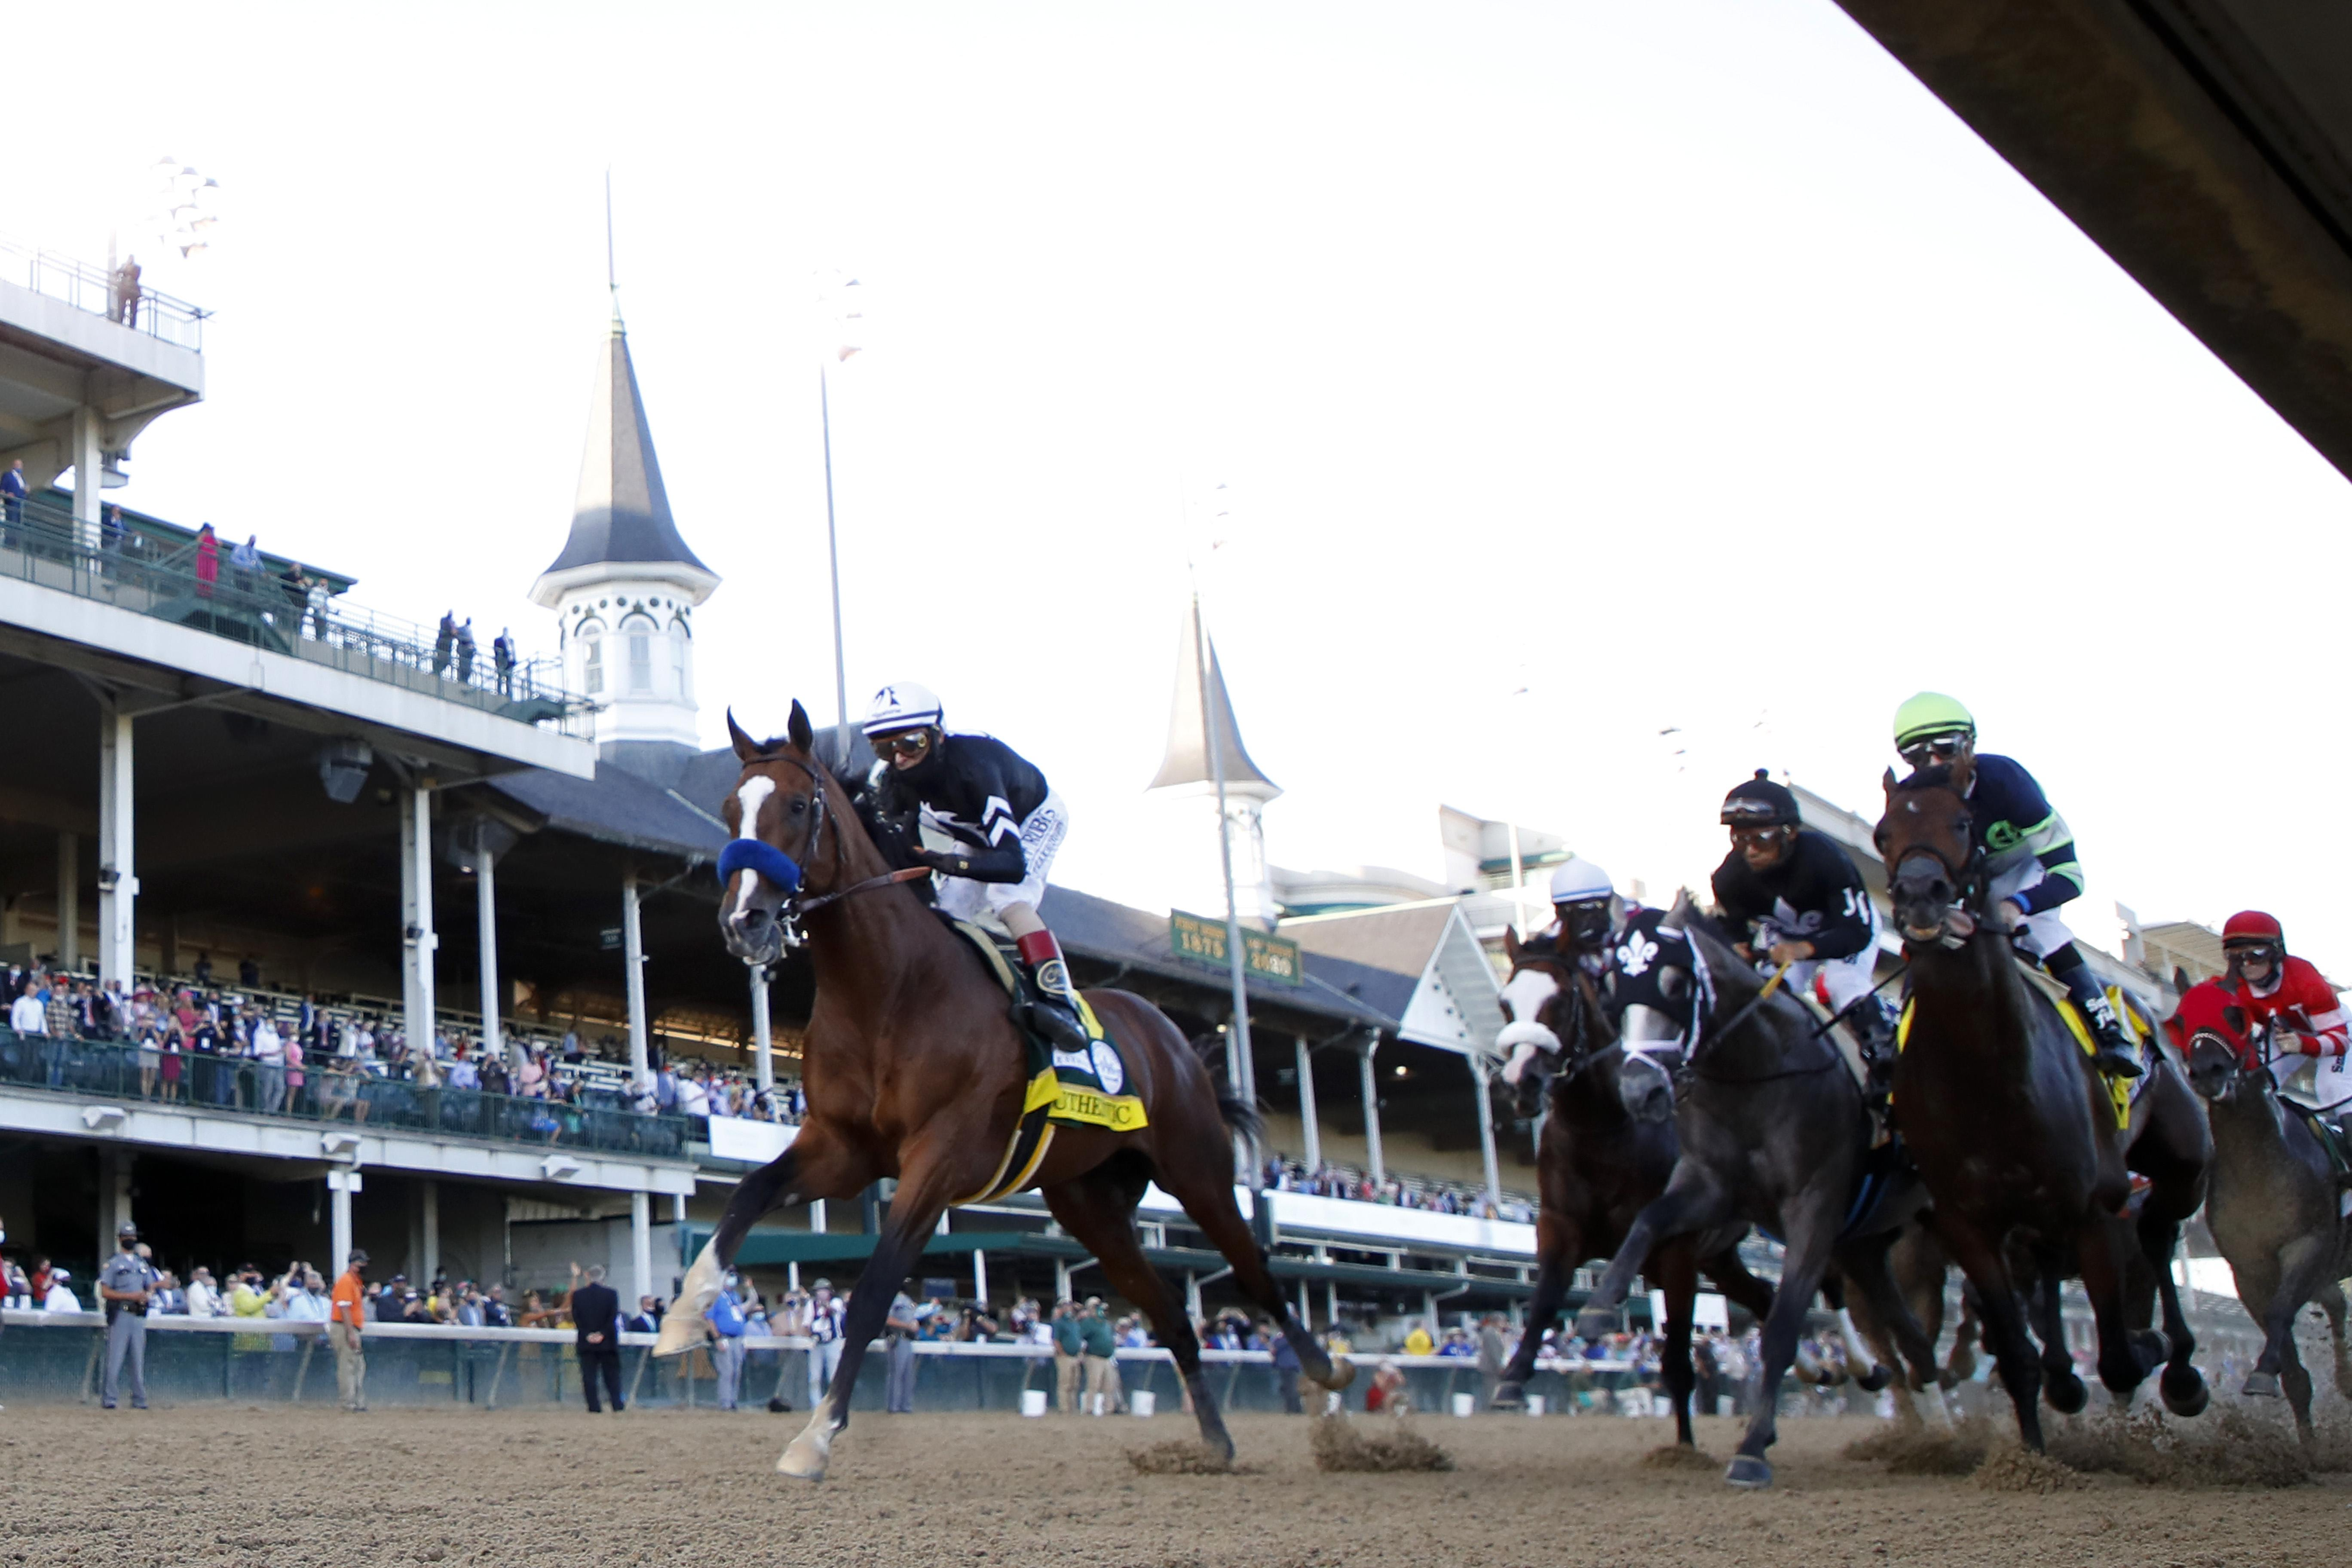 Kentucky Derby 25 Tickets How To Buy Seats, Prices, Capacity